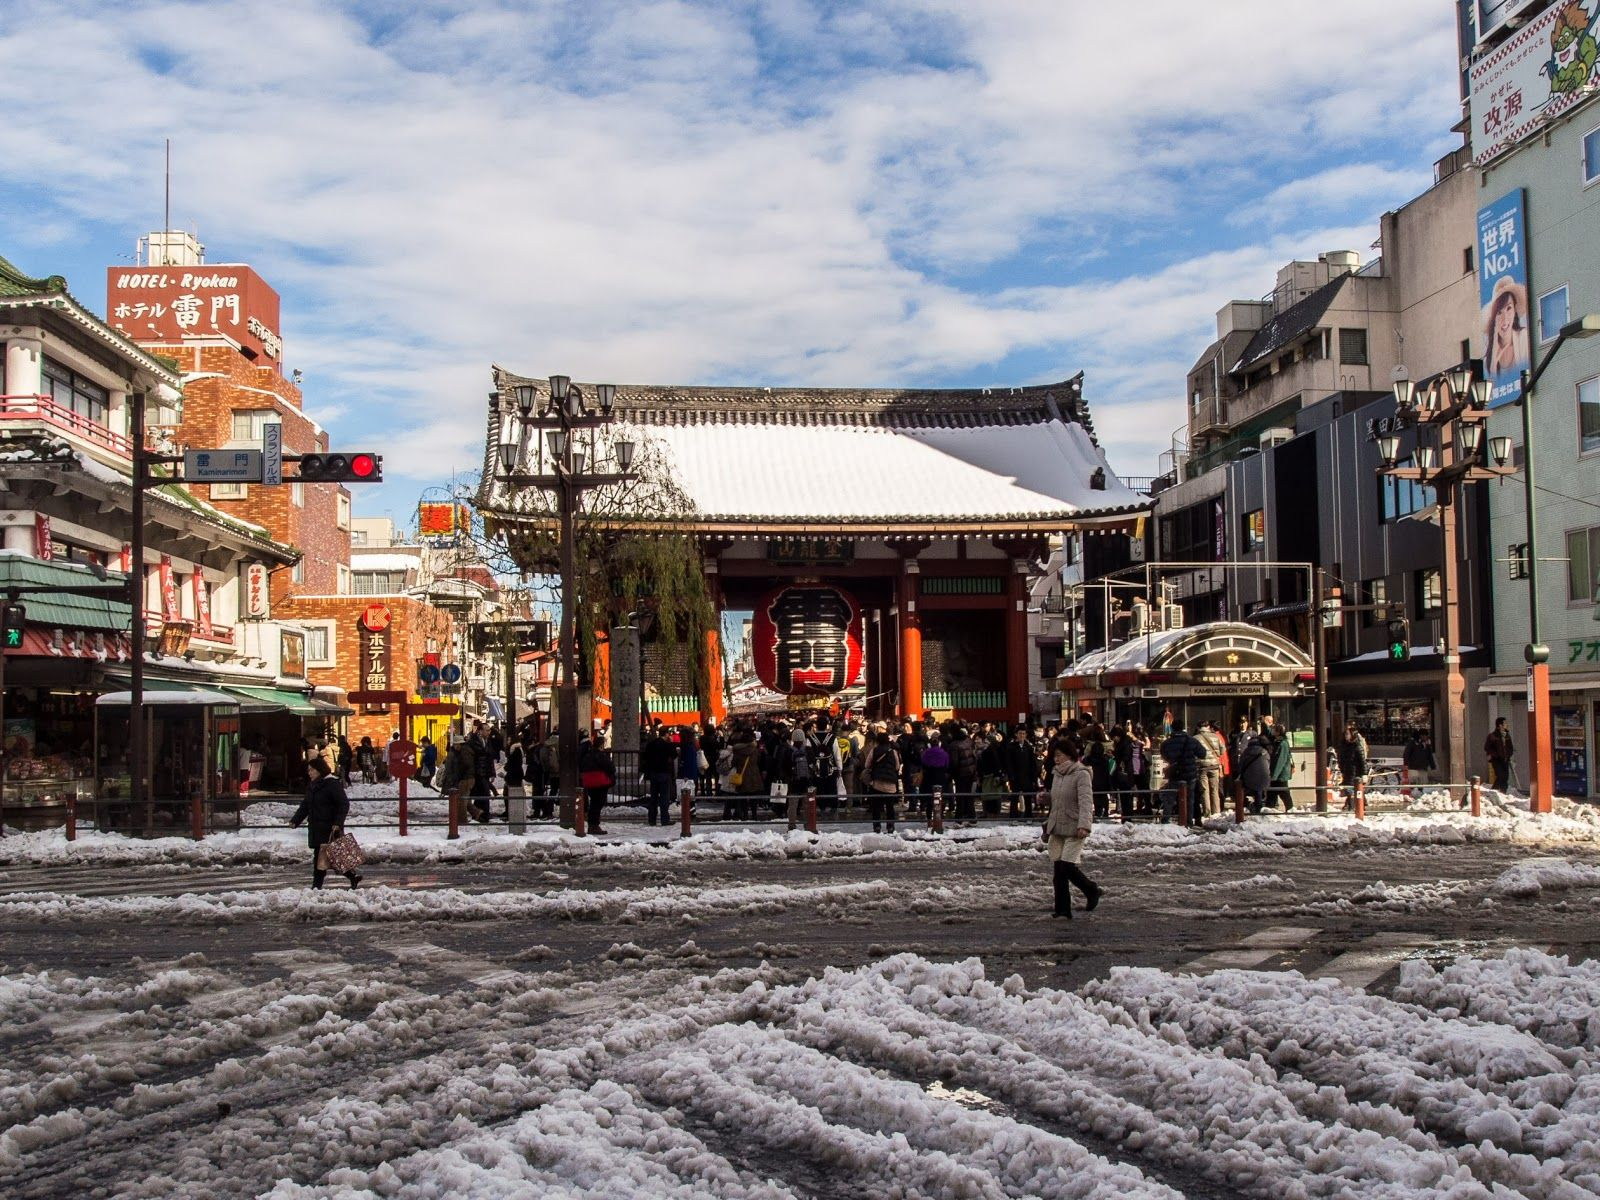 Again from my Nihon Arekore blog, Asakusa's Kaminarimon after Saturday's big snow -this was taken on the morning of Sunday, February 9.